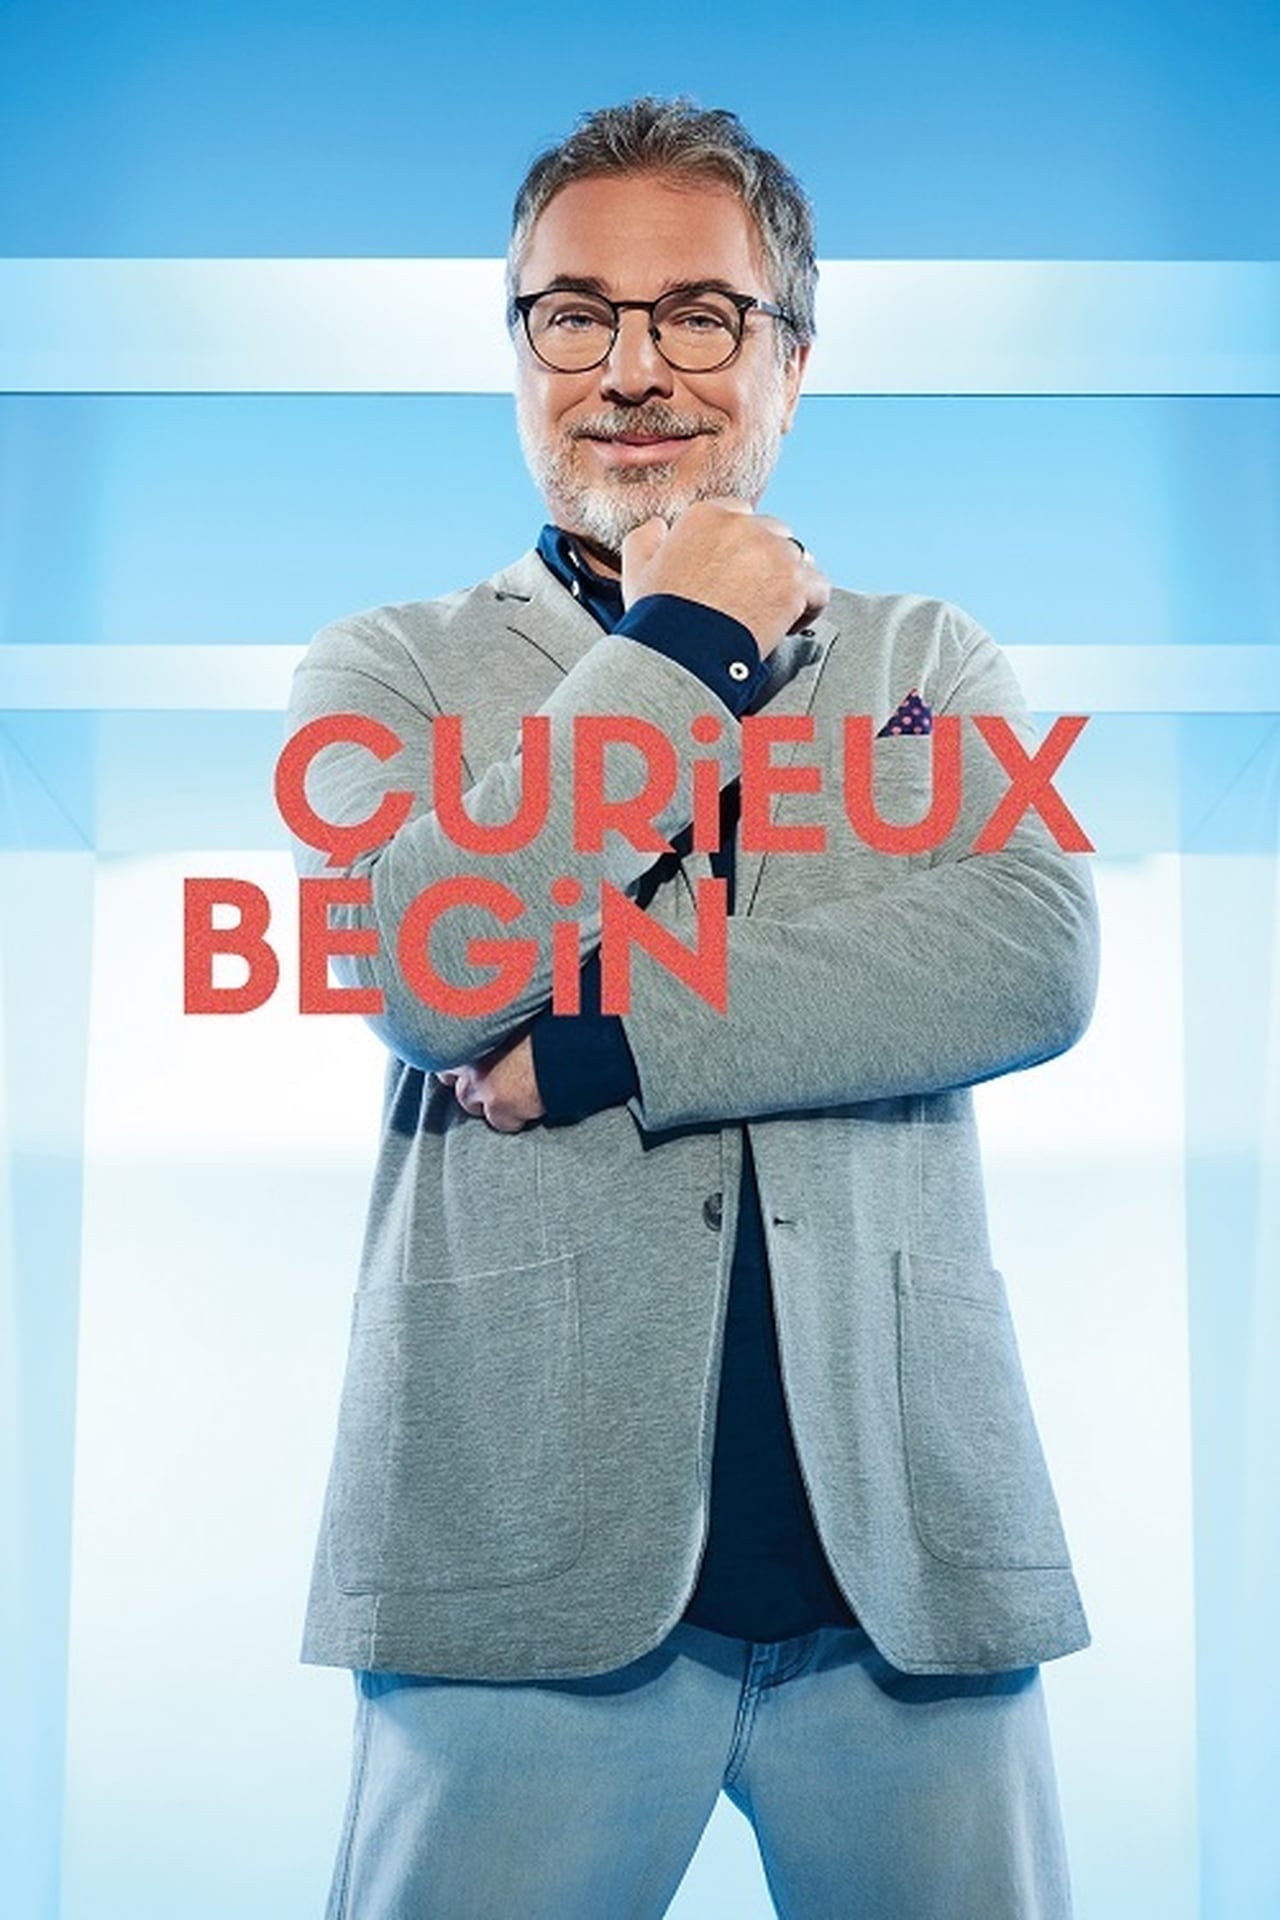 Putlocker Curieux Bégin Season 1 (2007)